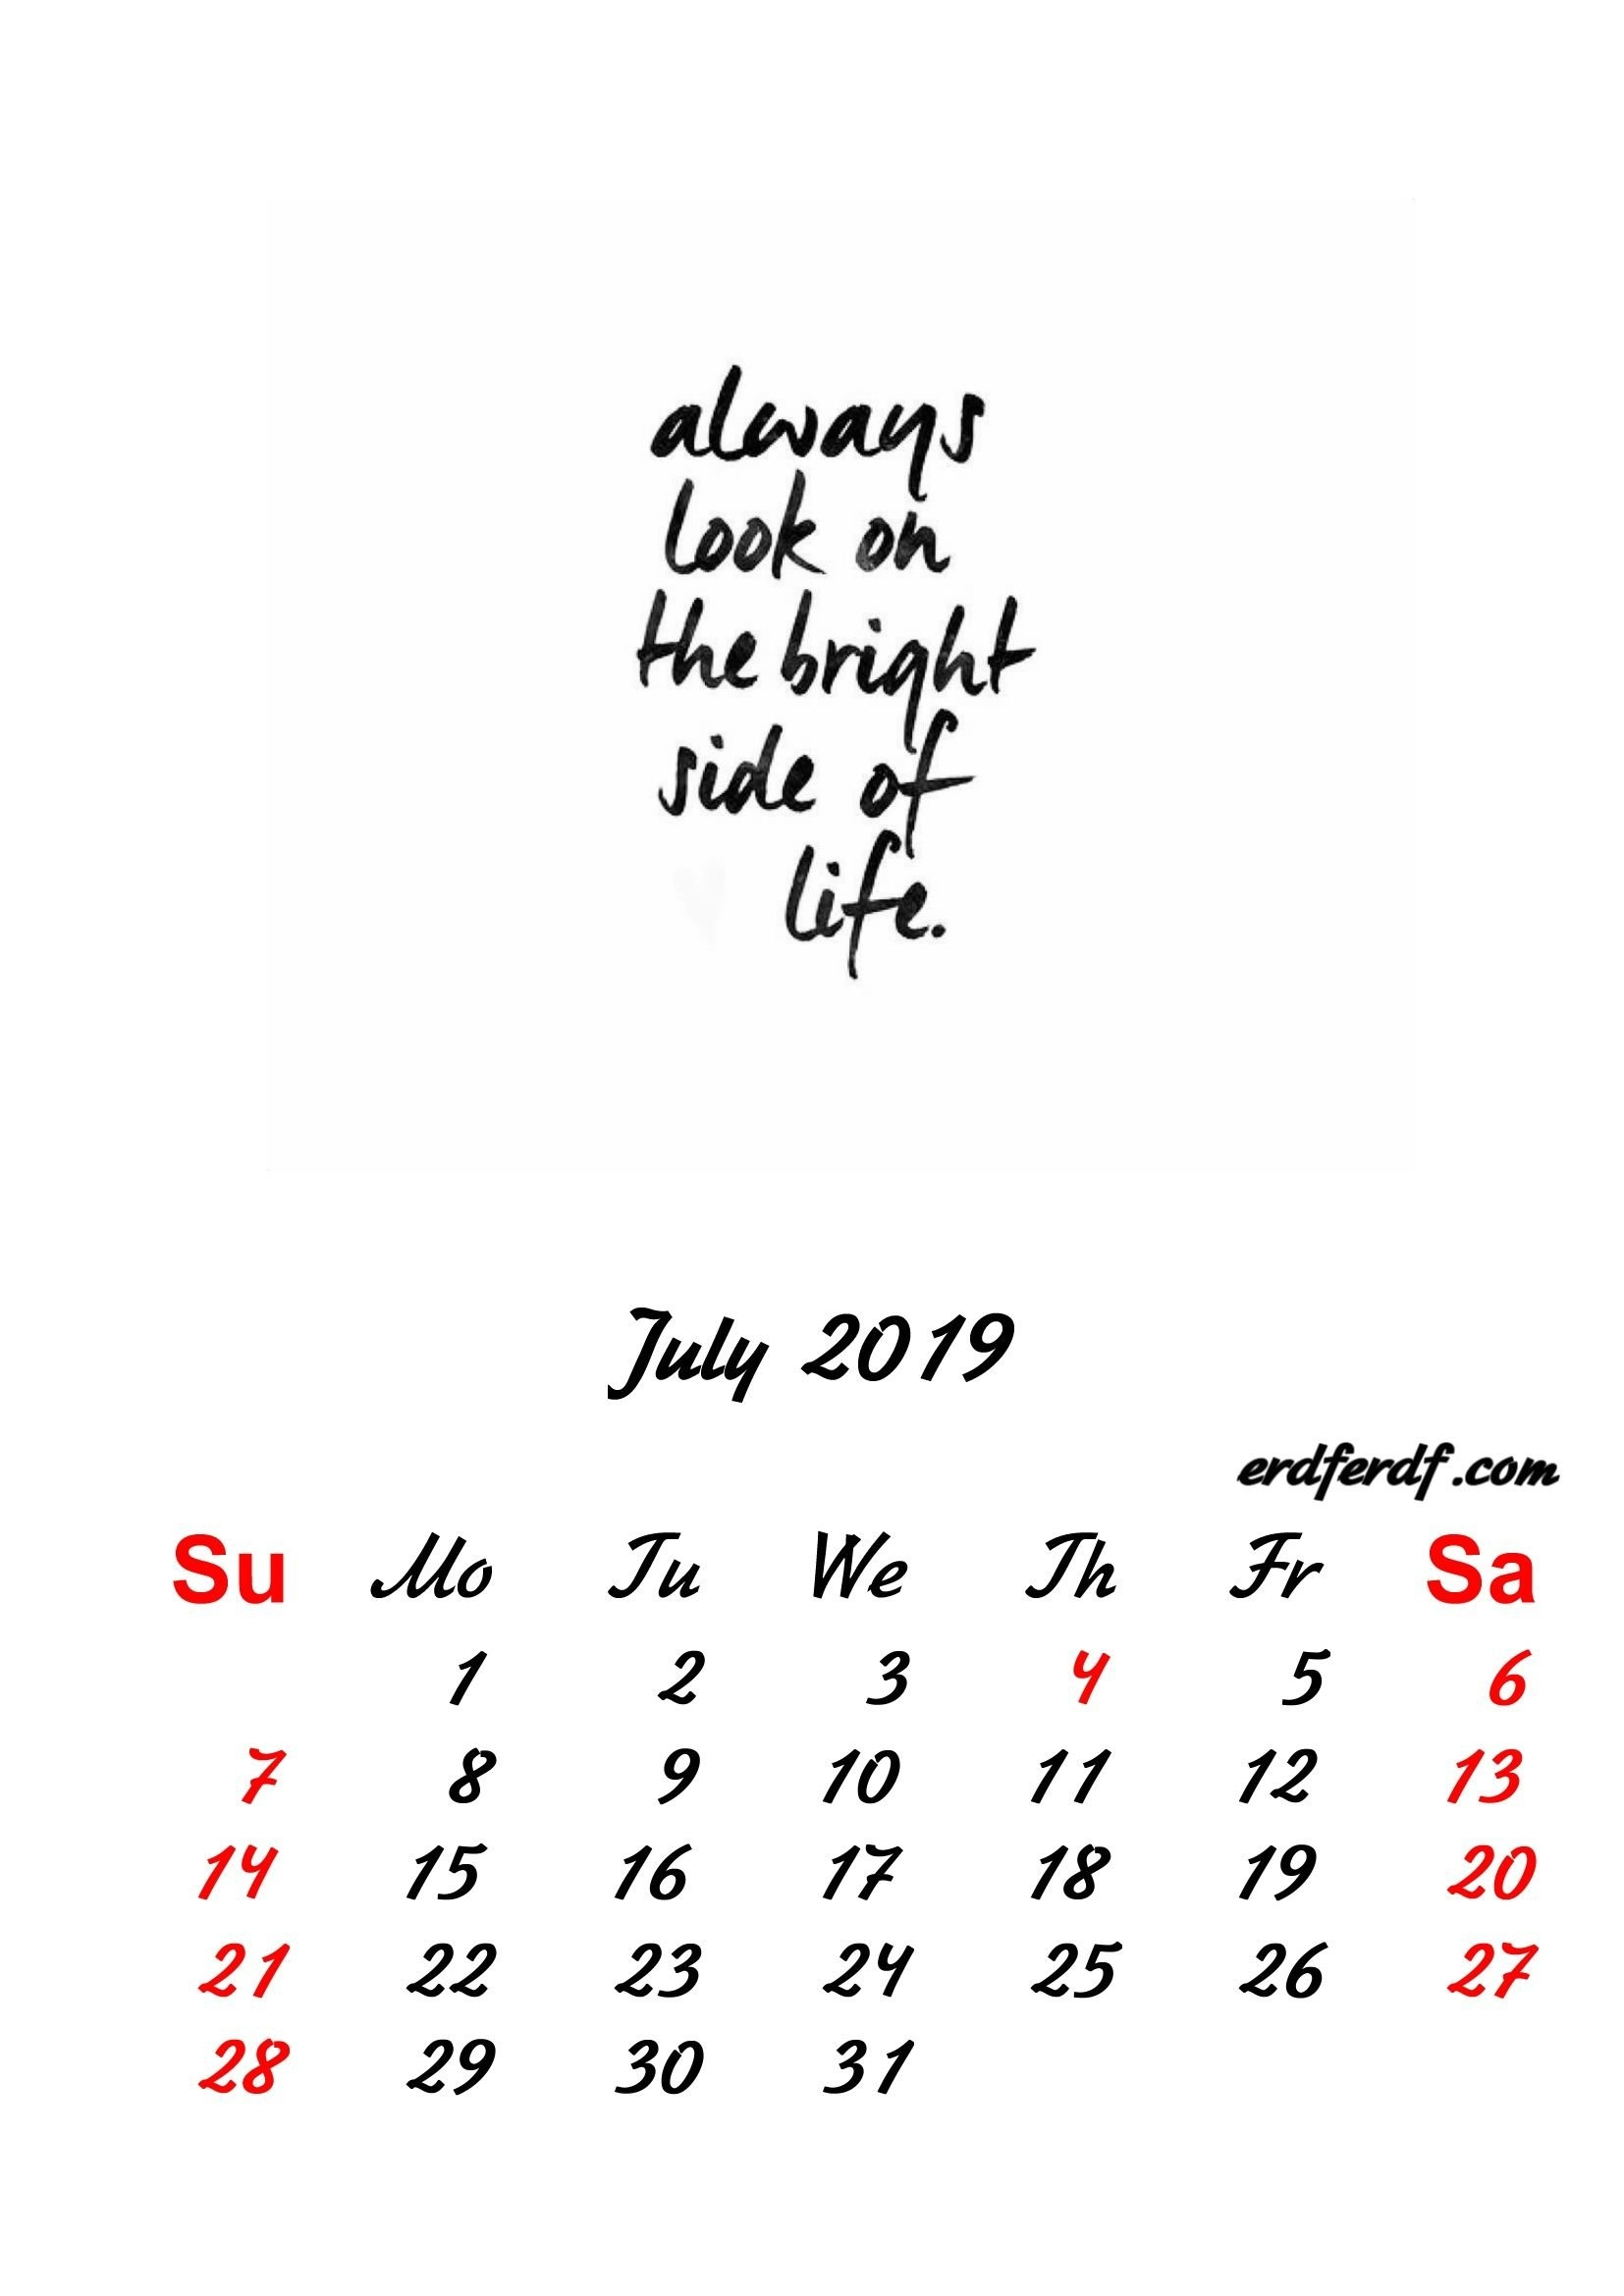 7 July 2019 Inspirational Quotes Pprintable Calendar   Monthly July 7 2019 Calendar